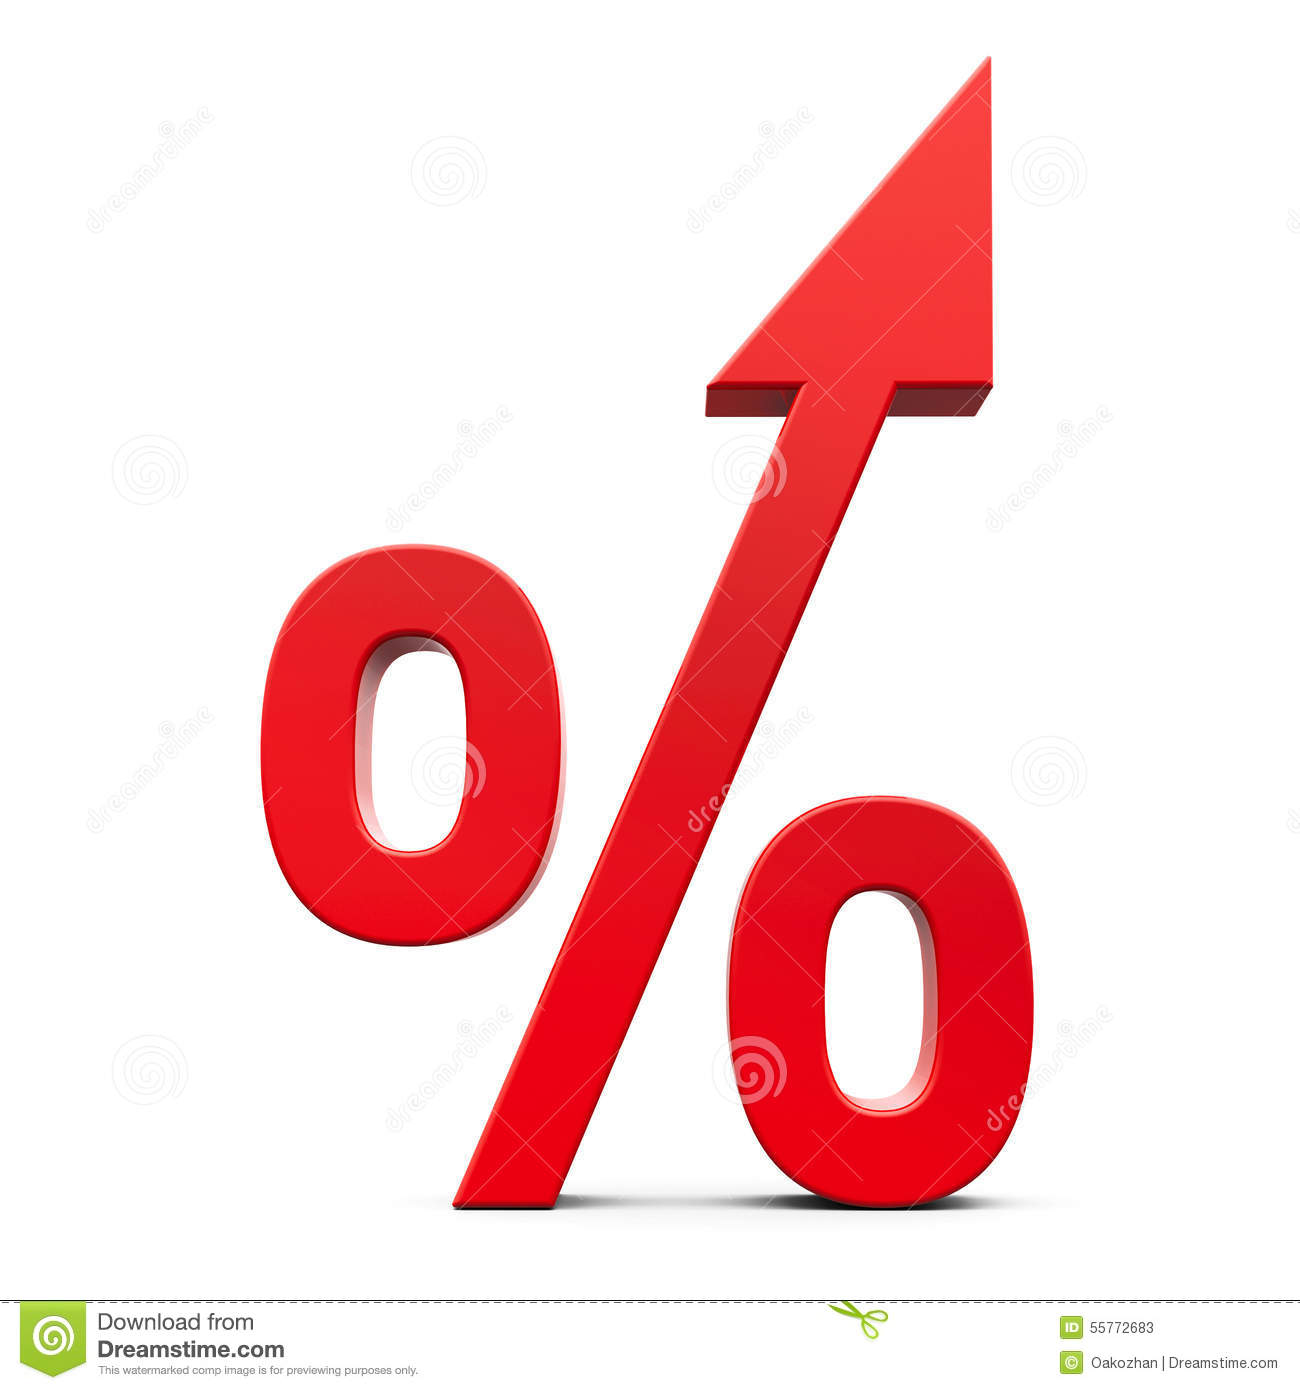 how to find increase in percentage